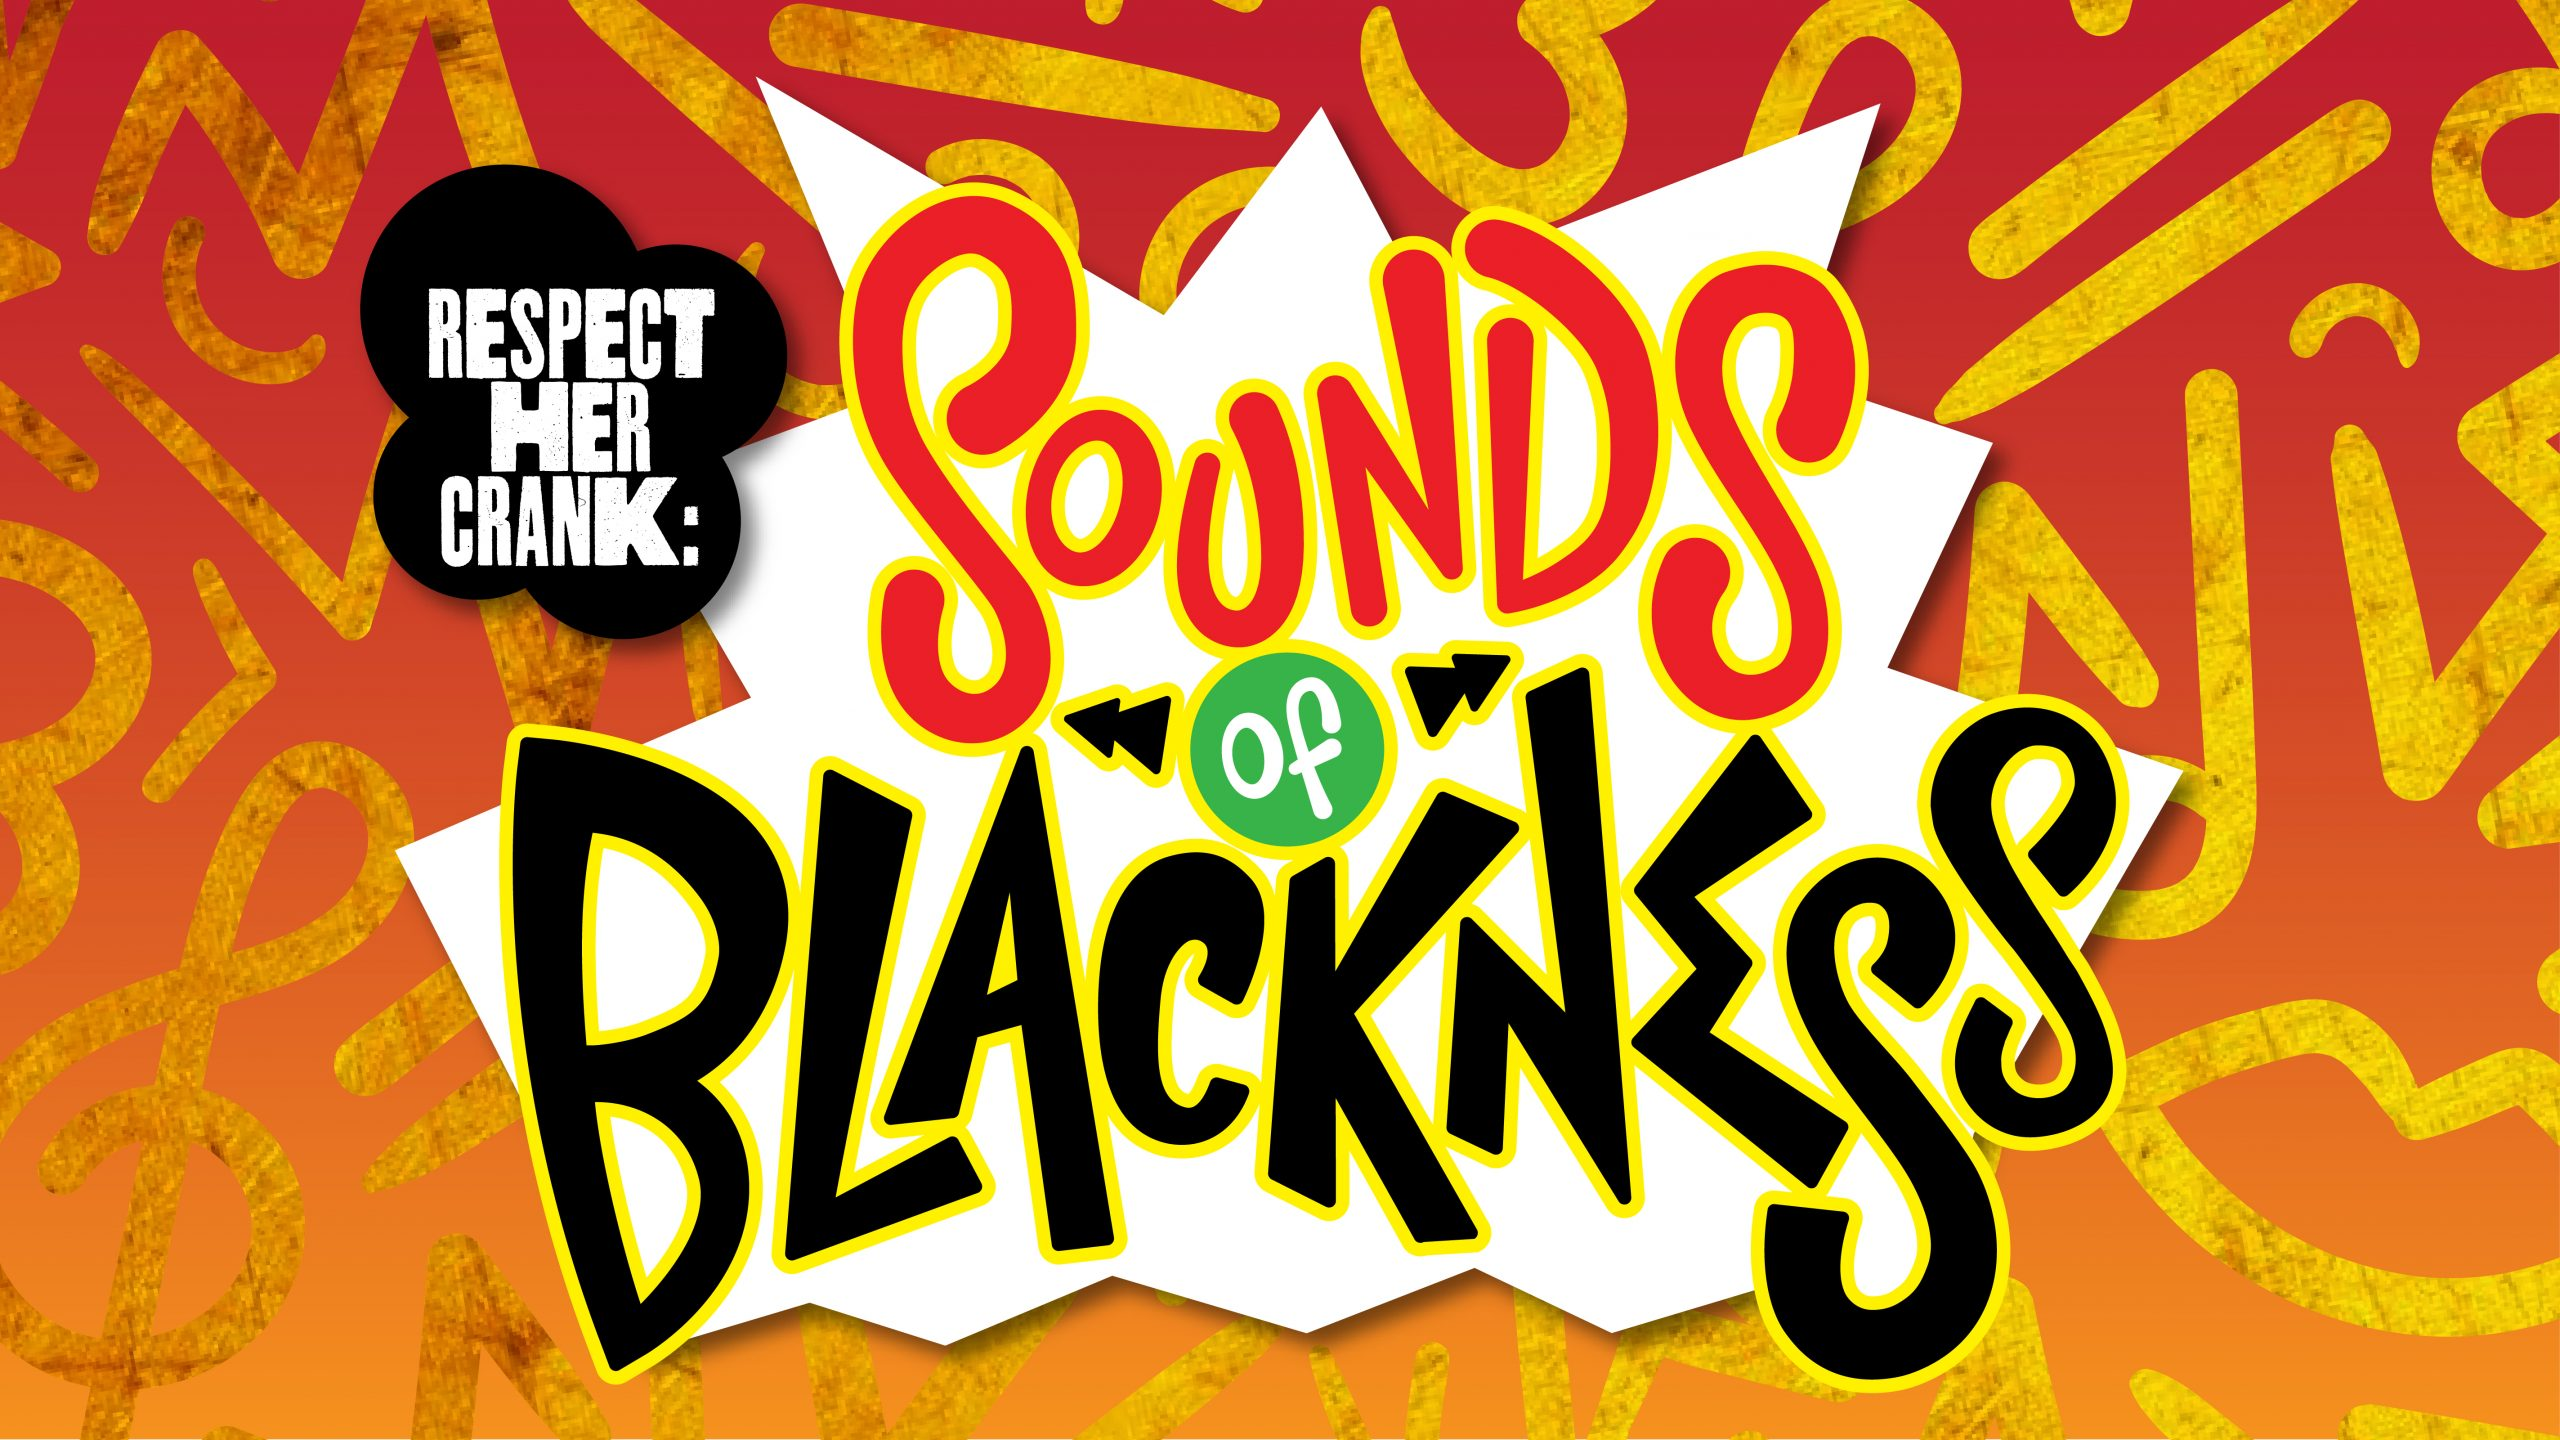 """Energetic text reading """"Respect Her Crank: Sounds of Blackness"""""""